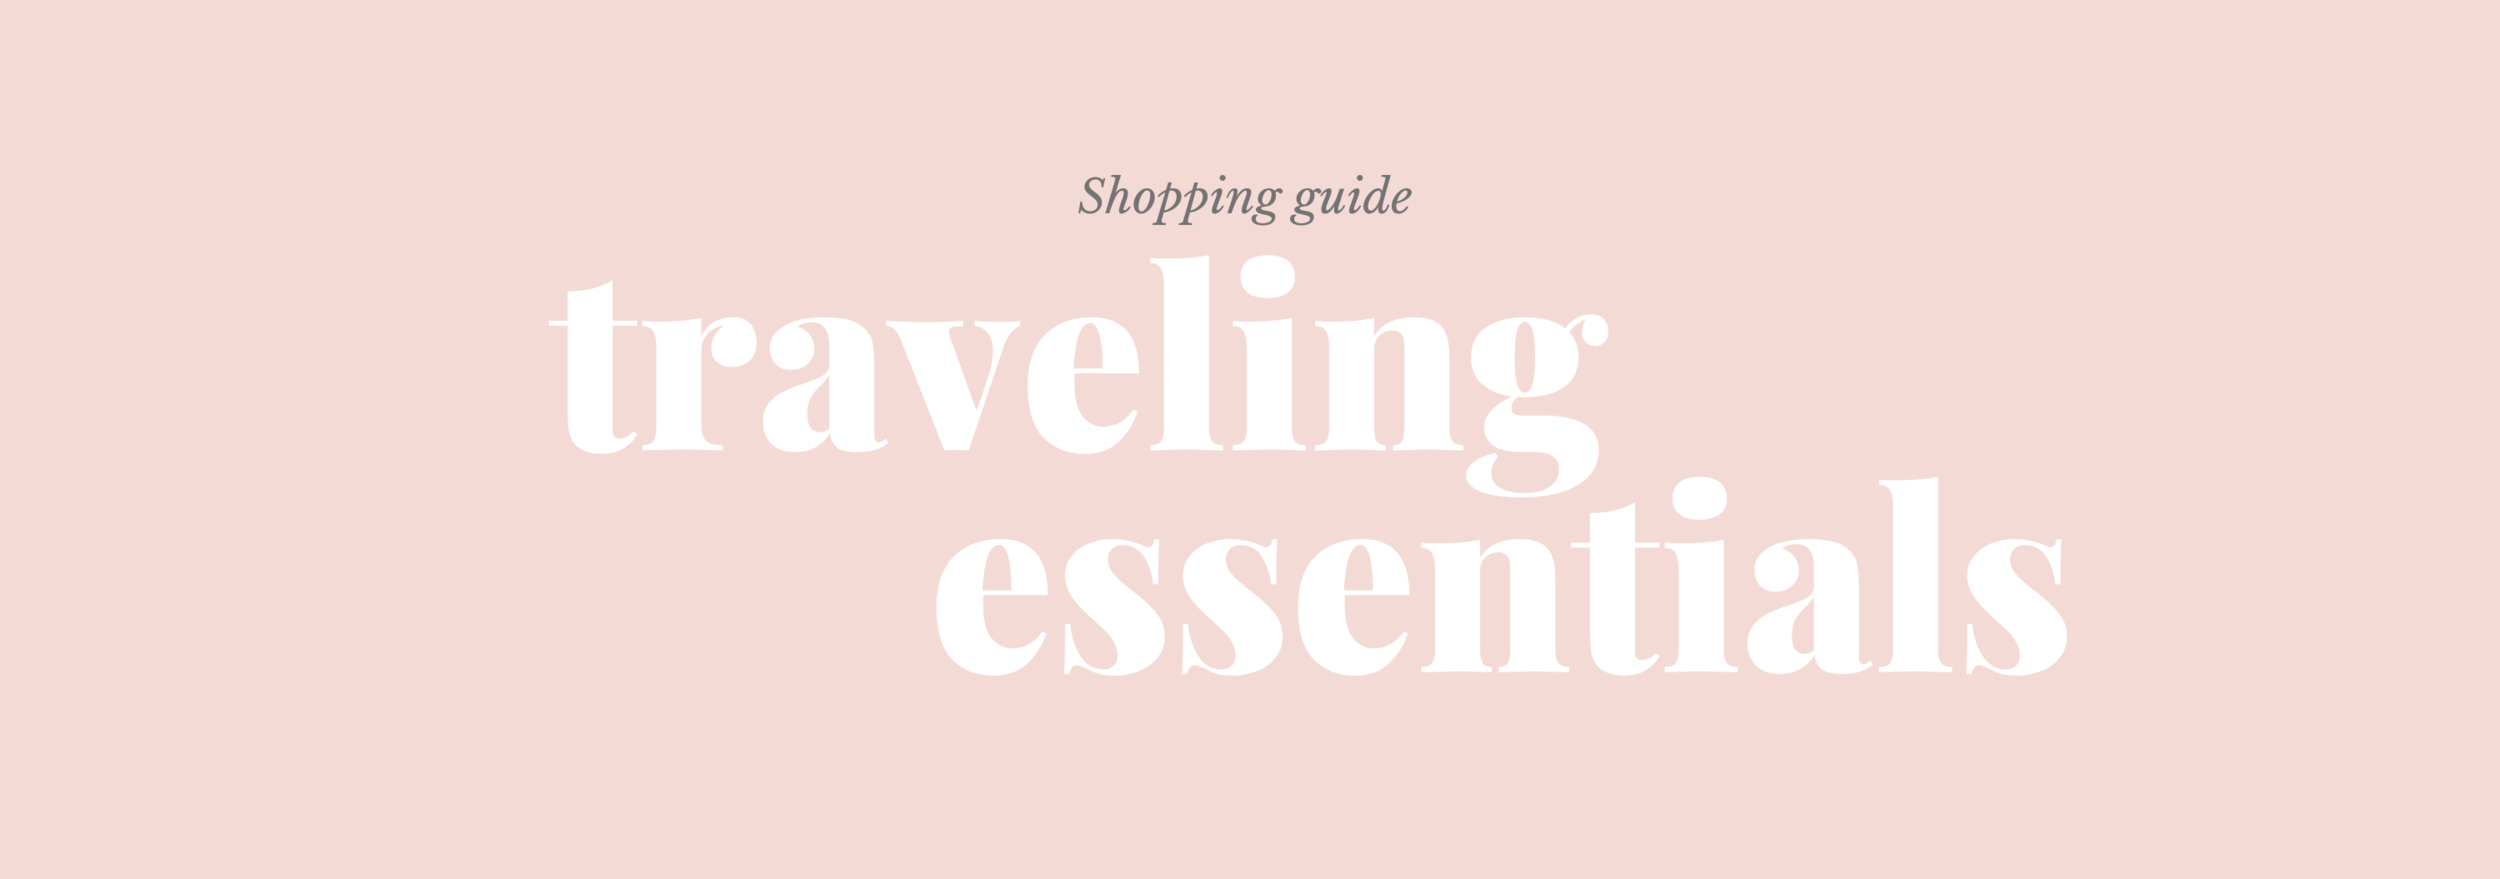 Shopping guide for traveling essentials!